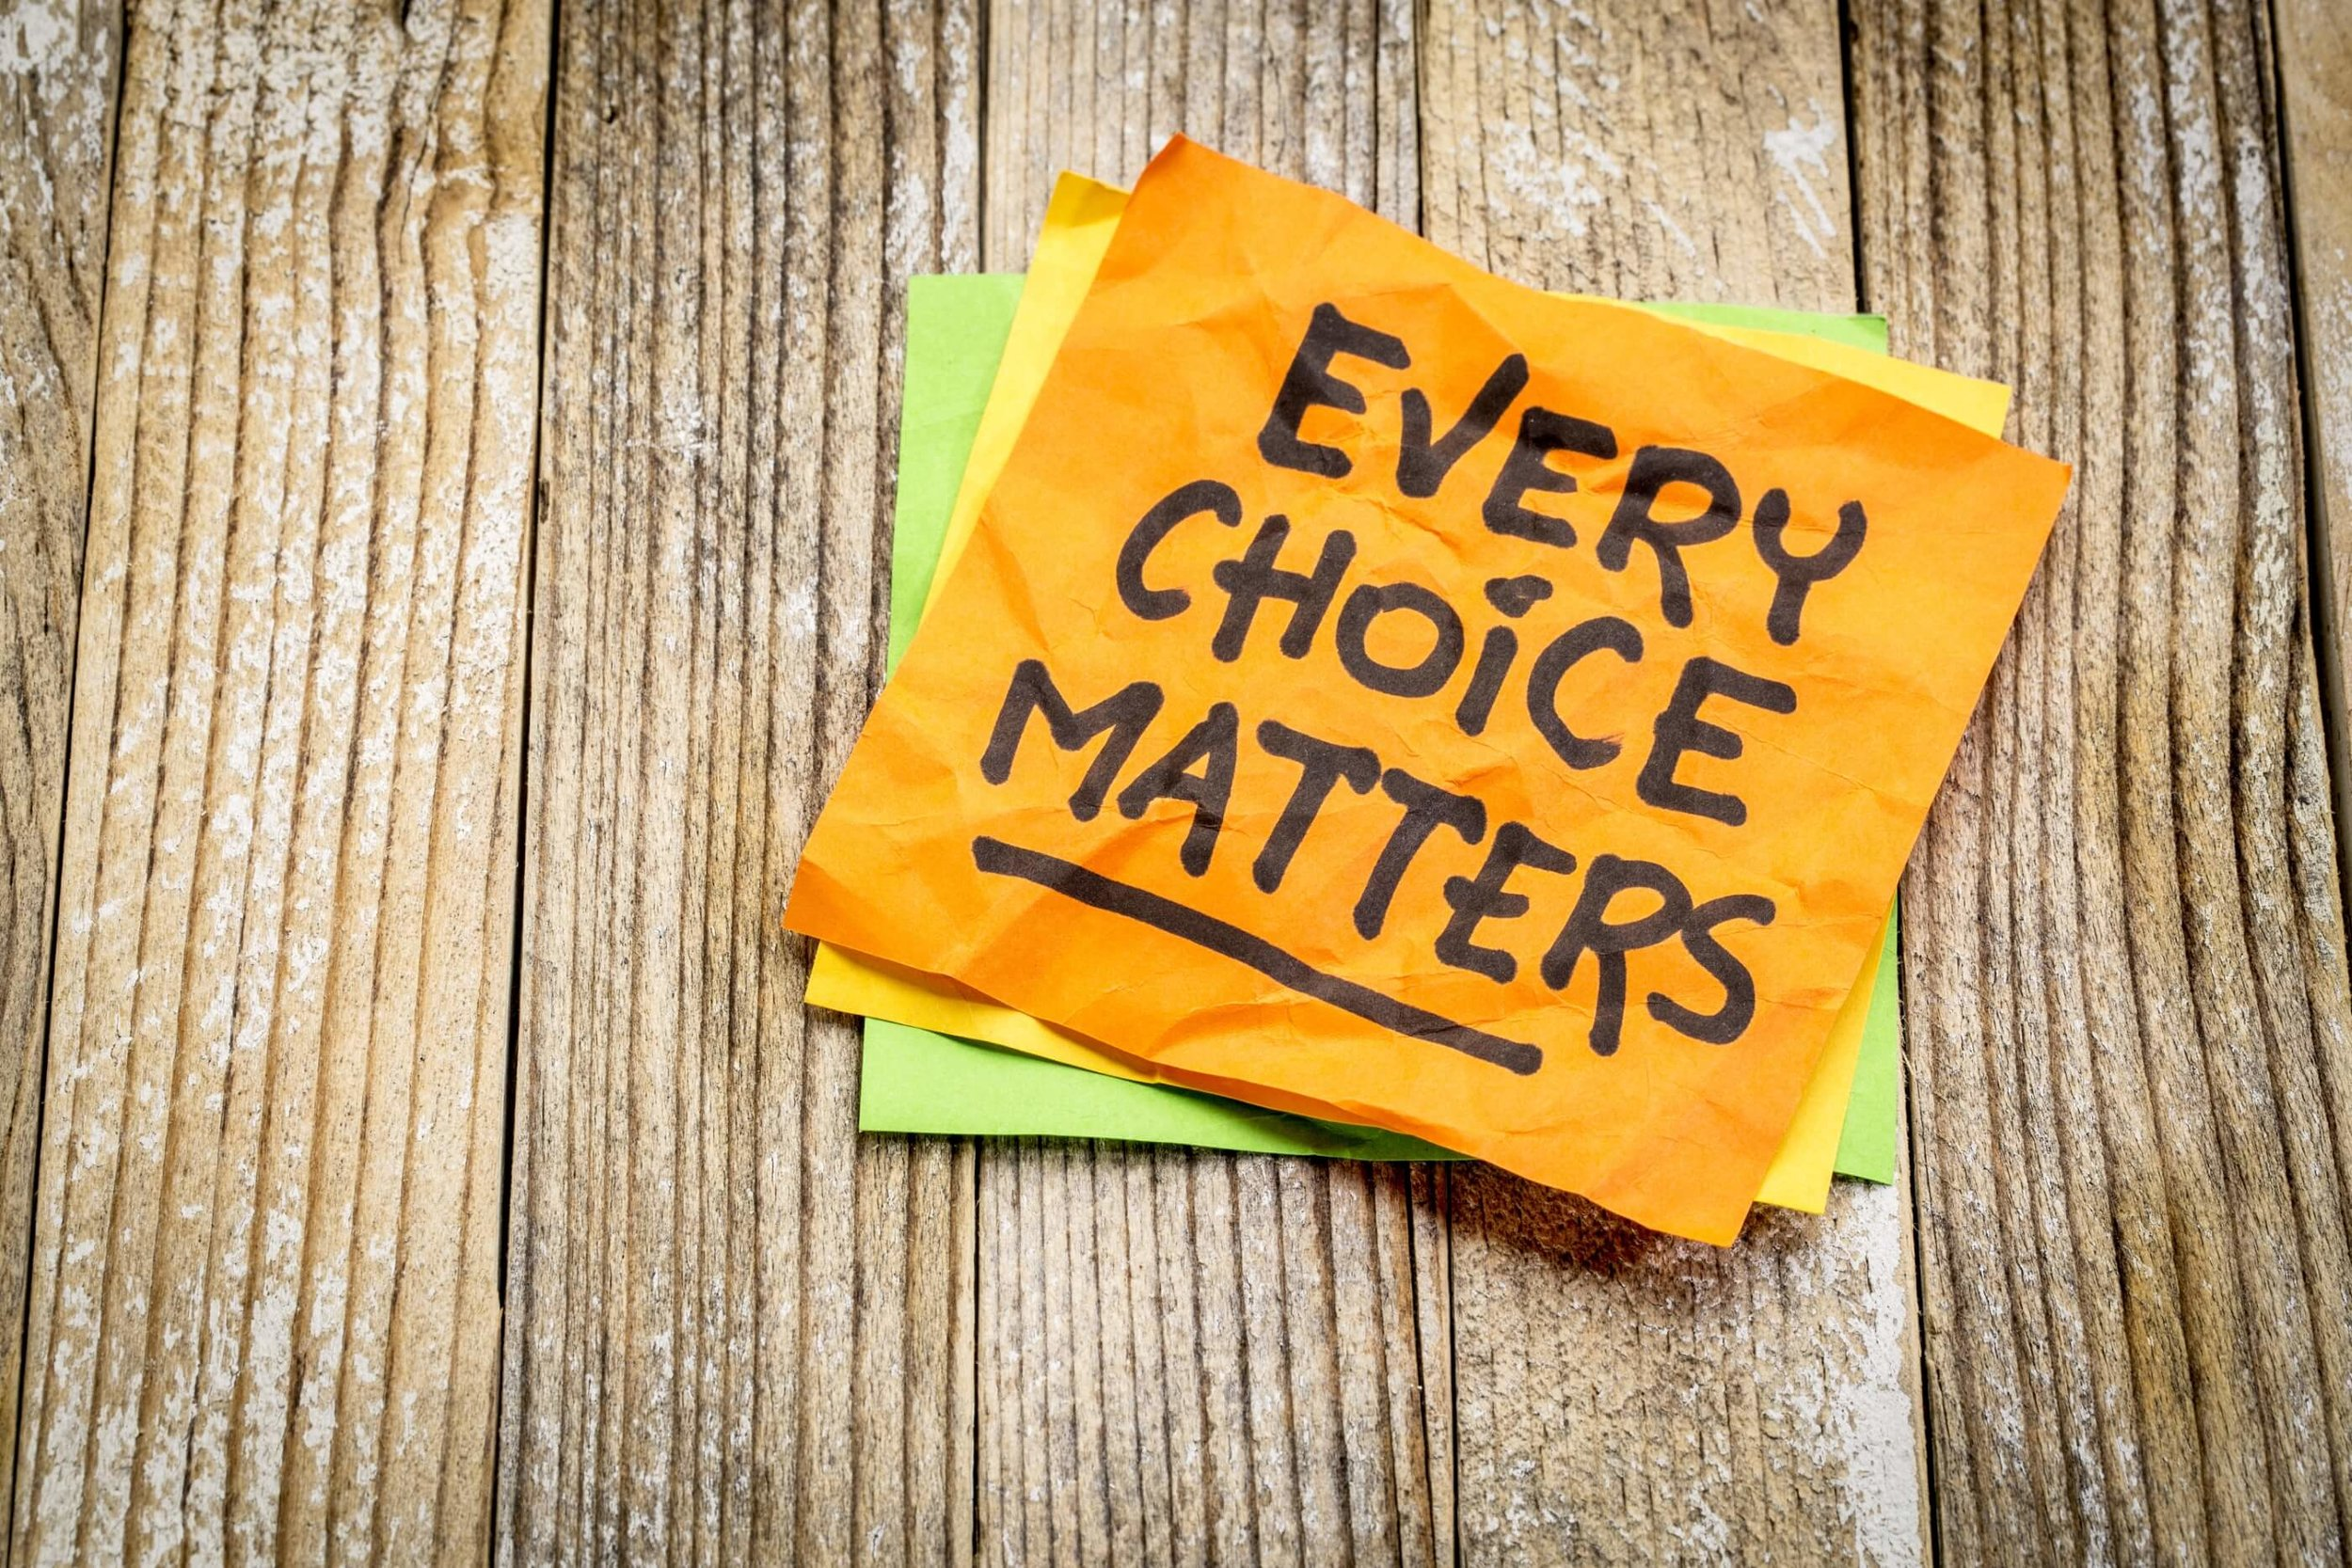 Choices for Sexual Health - Every Choice Matters